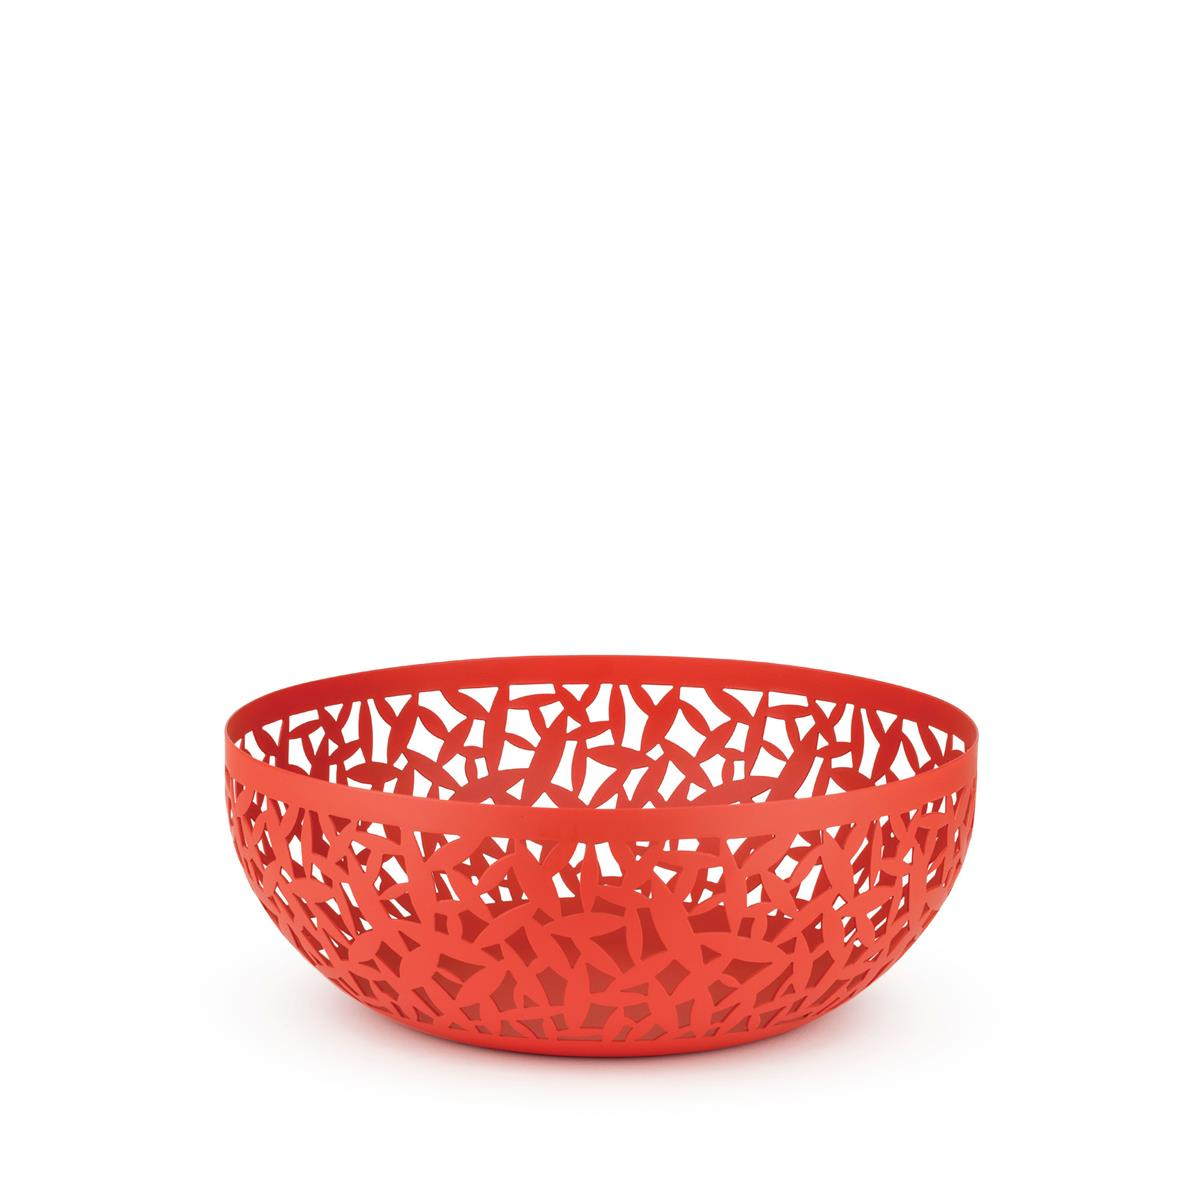 Alessi-CACTUS! Perforated fruit bowl in colored steel and resin, Super Red-